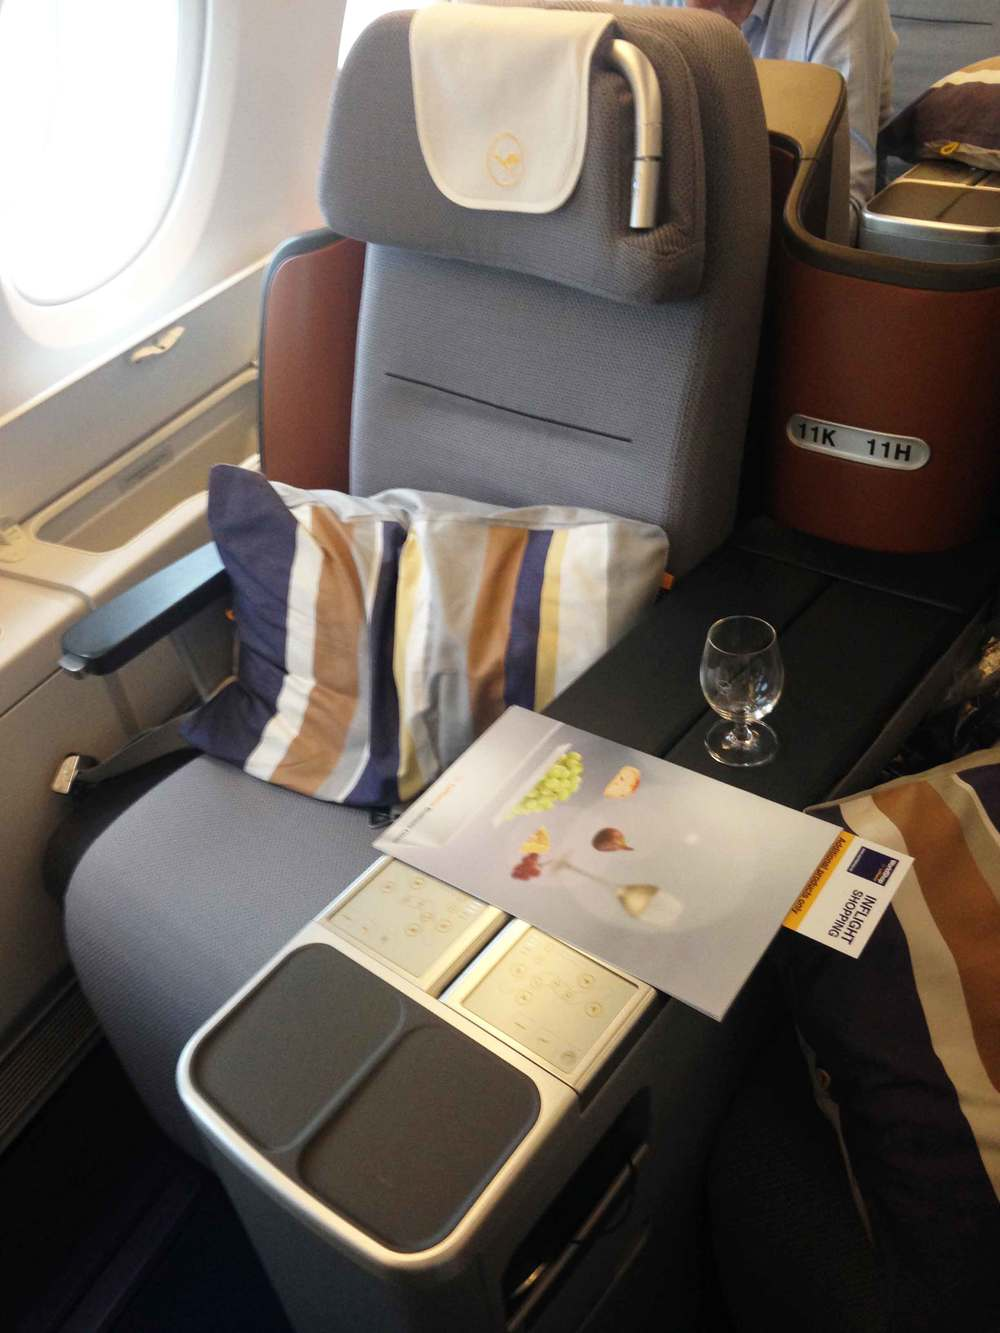 Image©sourcingstyle.com, Lufthansa Business Class, A380